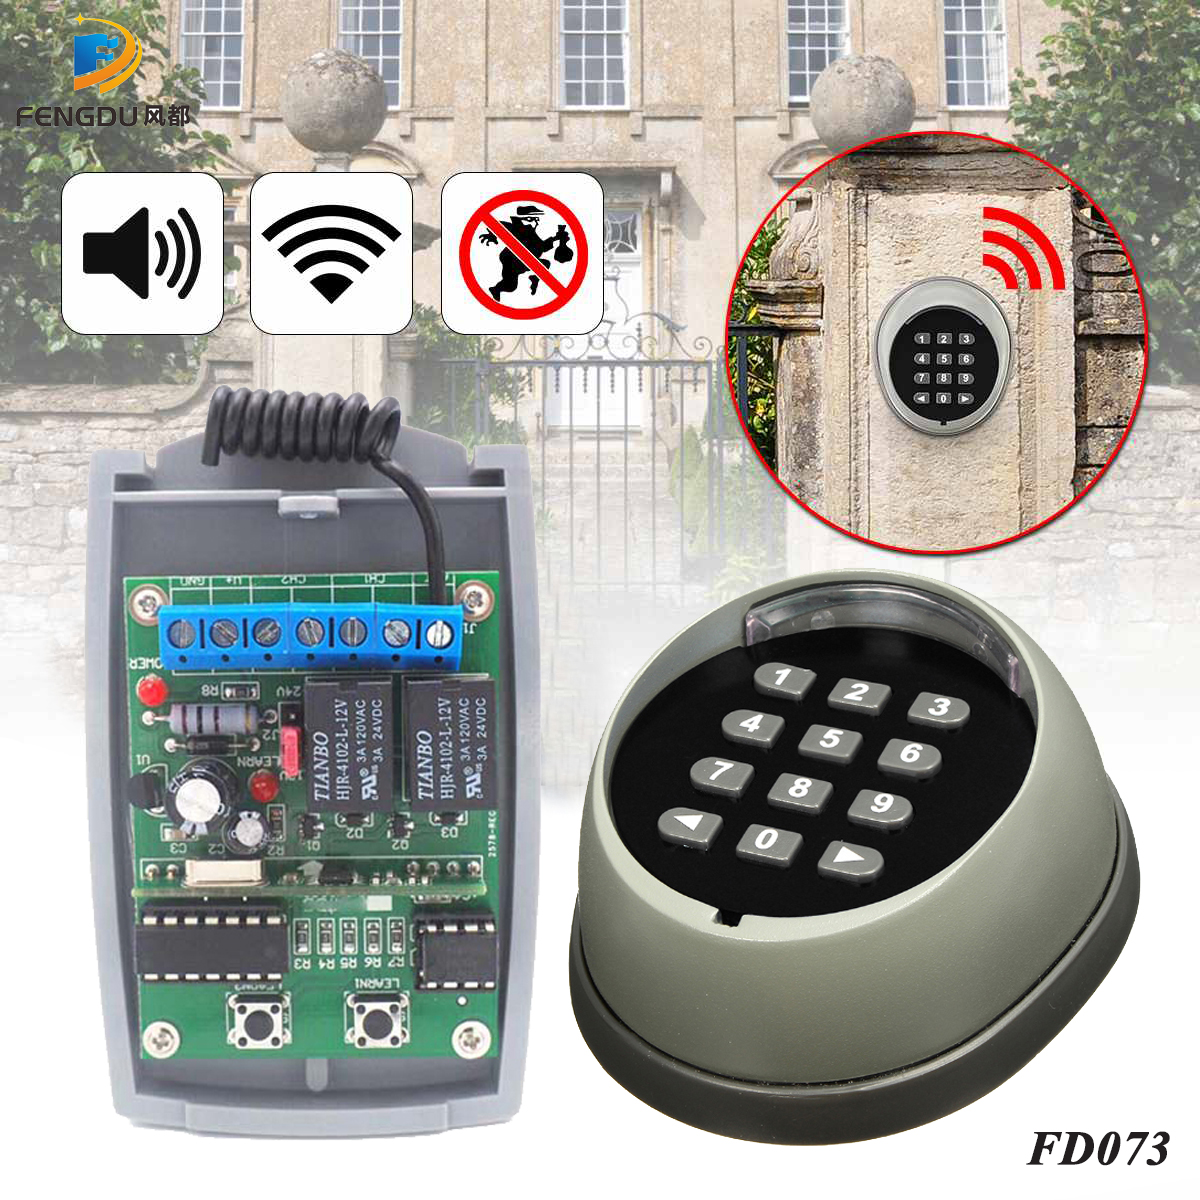 Wireless Gate Keypad for Sliding Gate Opener with Dust Cover 433.92MHZ Security